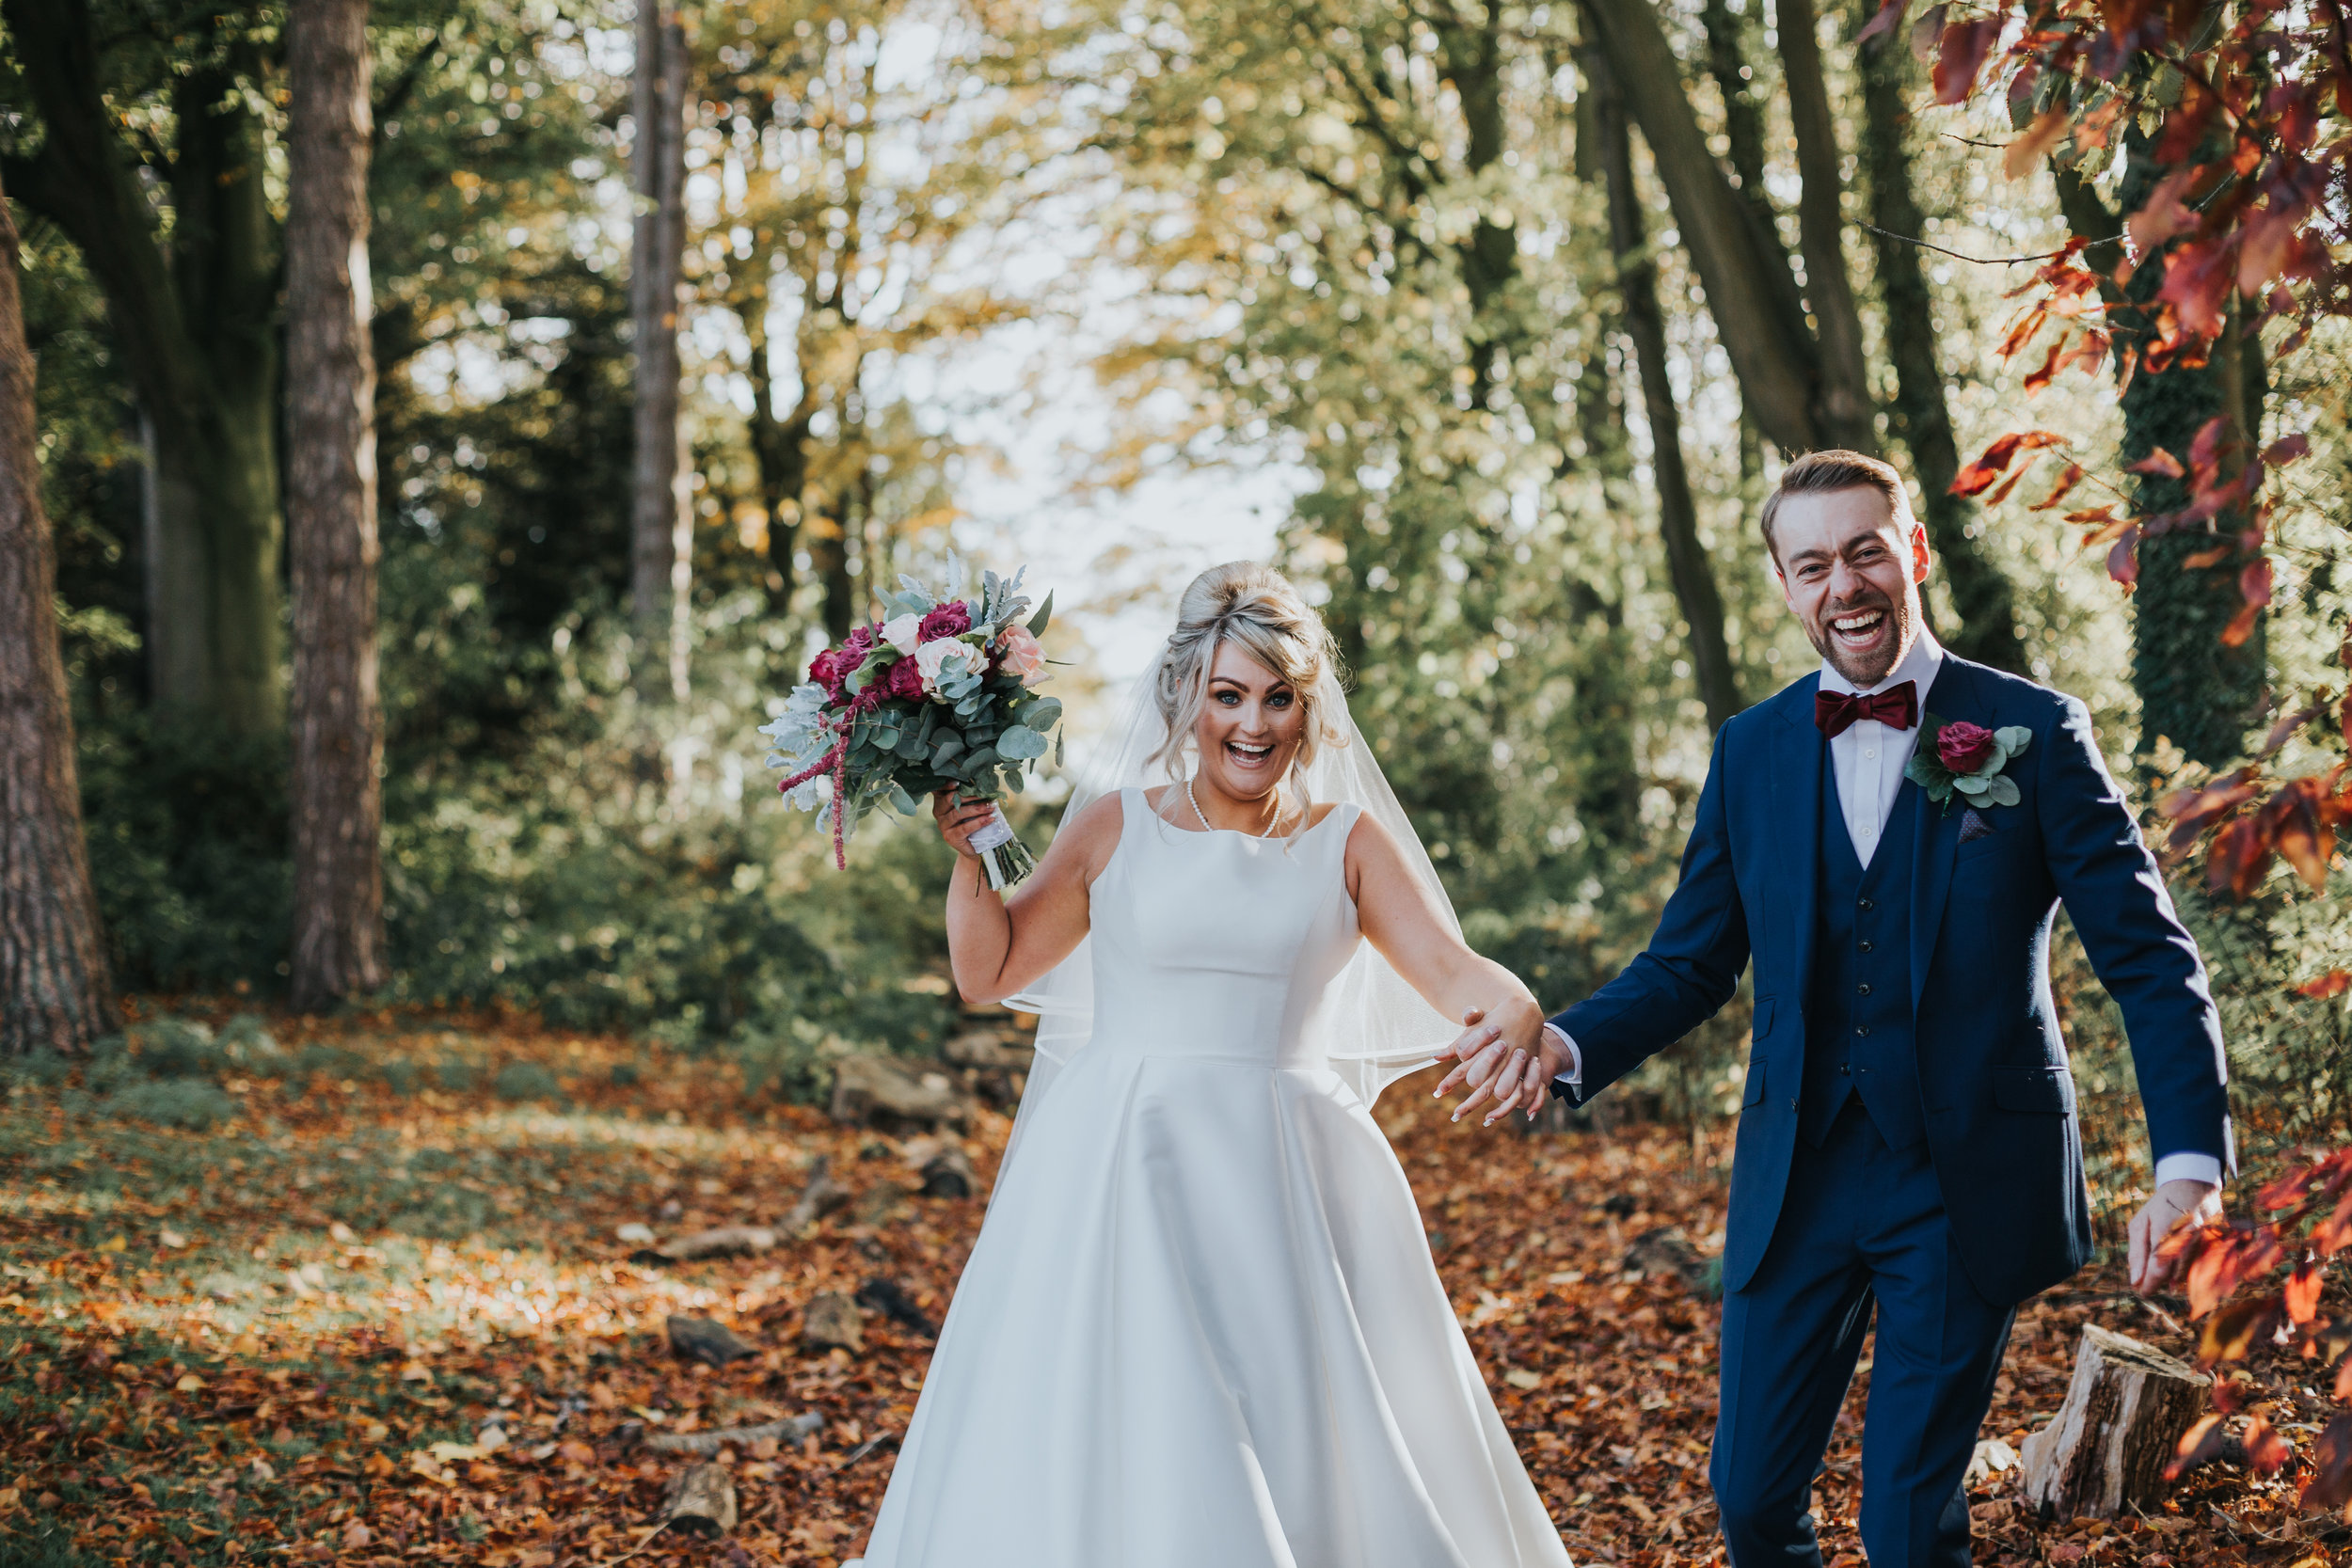 Husband and wife walk through the tree lined path together laughing after their Autumnal wedding ceremony at Inglewood Manor.